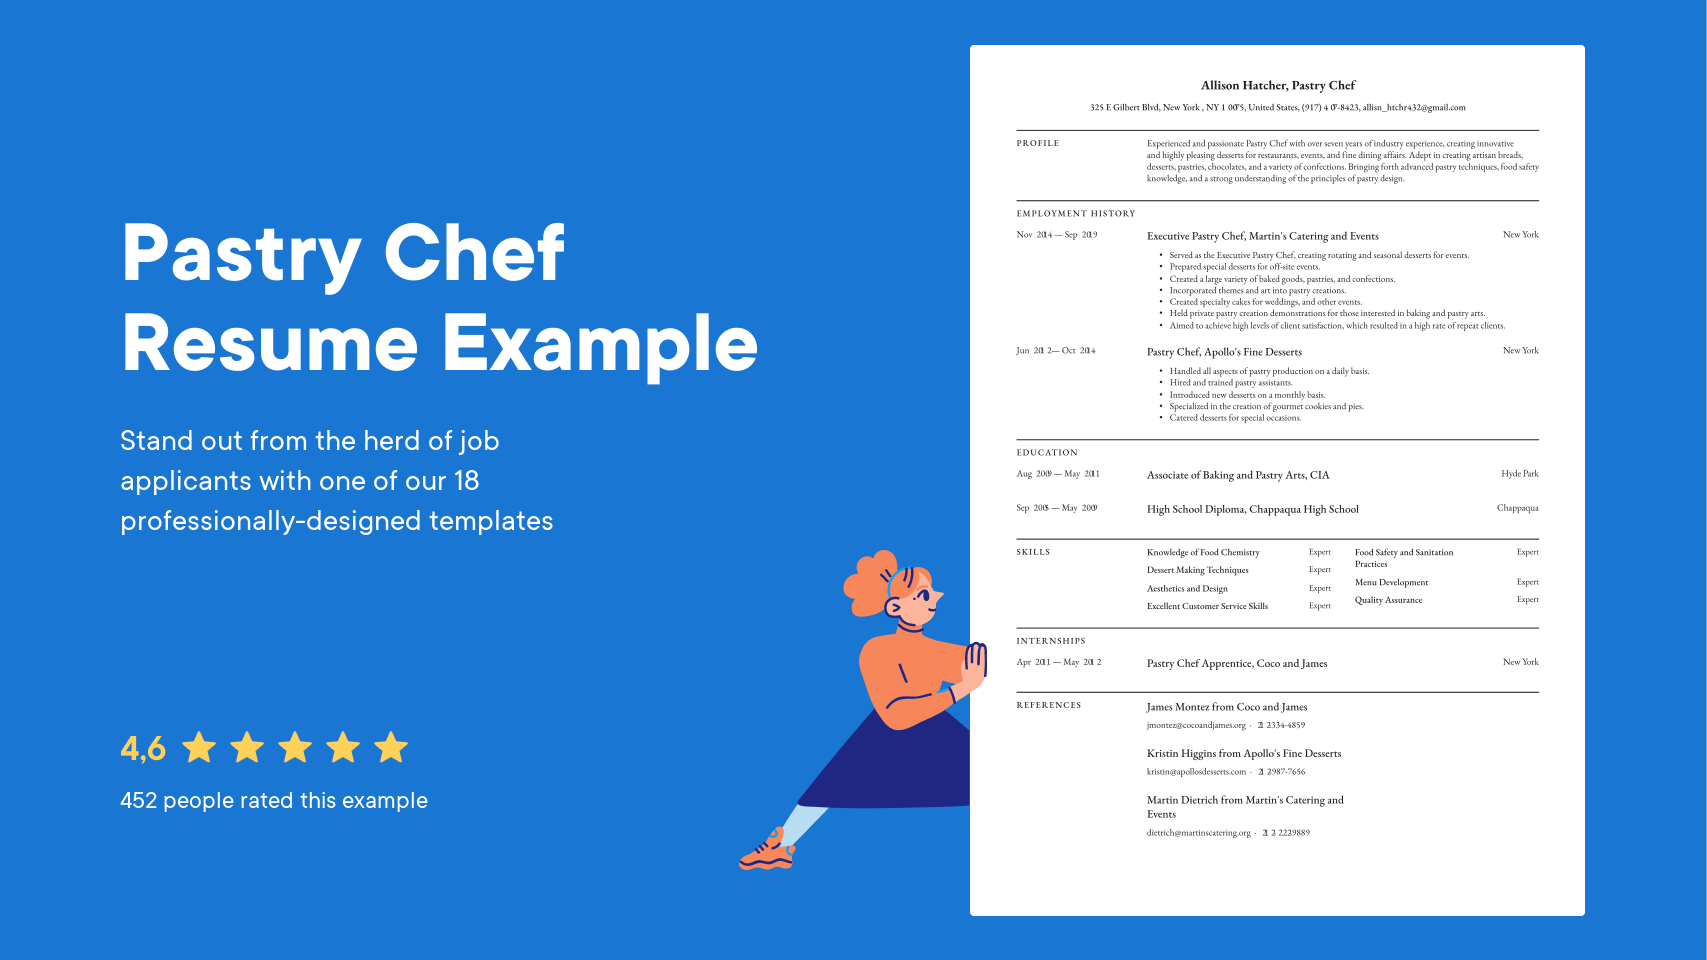 Pastry Chef Resume Examples Writing Tips 2021 Free Guide